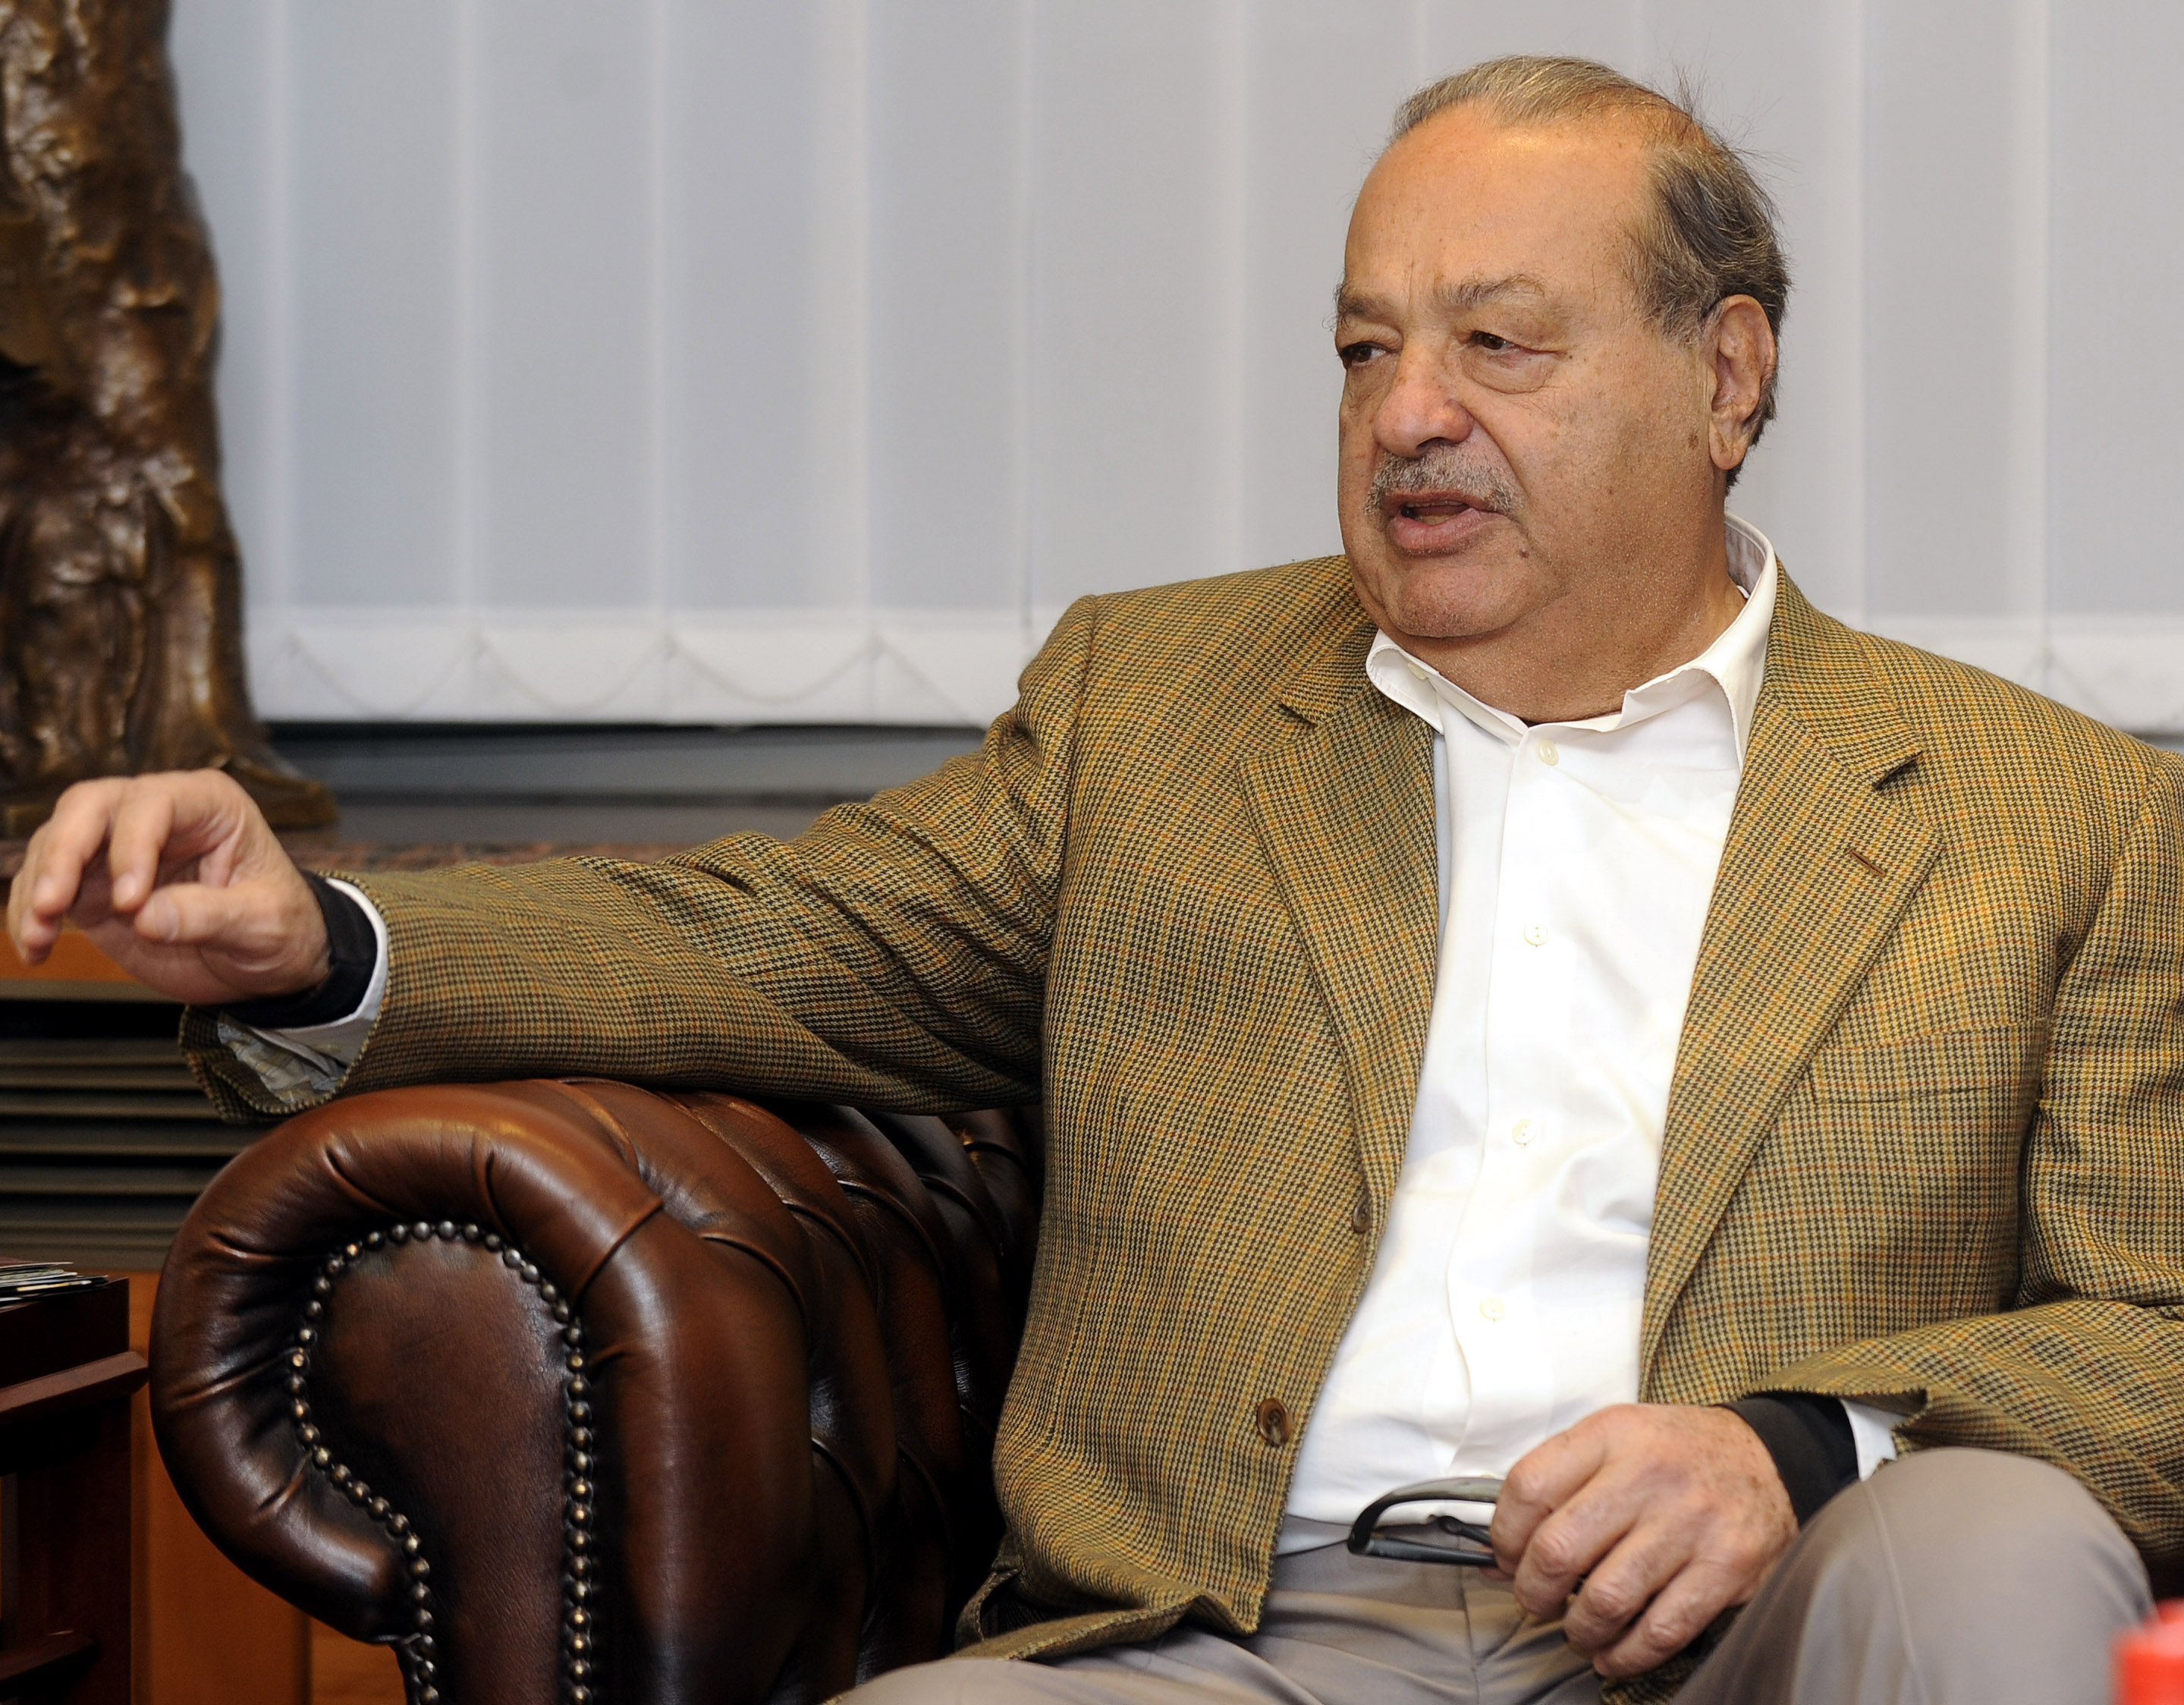 Forbes Carlos Slim worlds richest man for 4th year in a